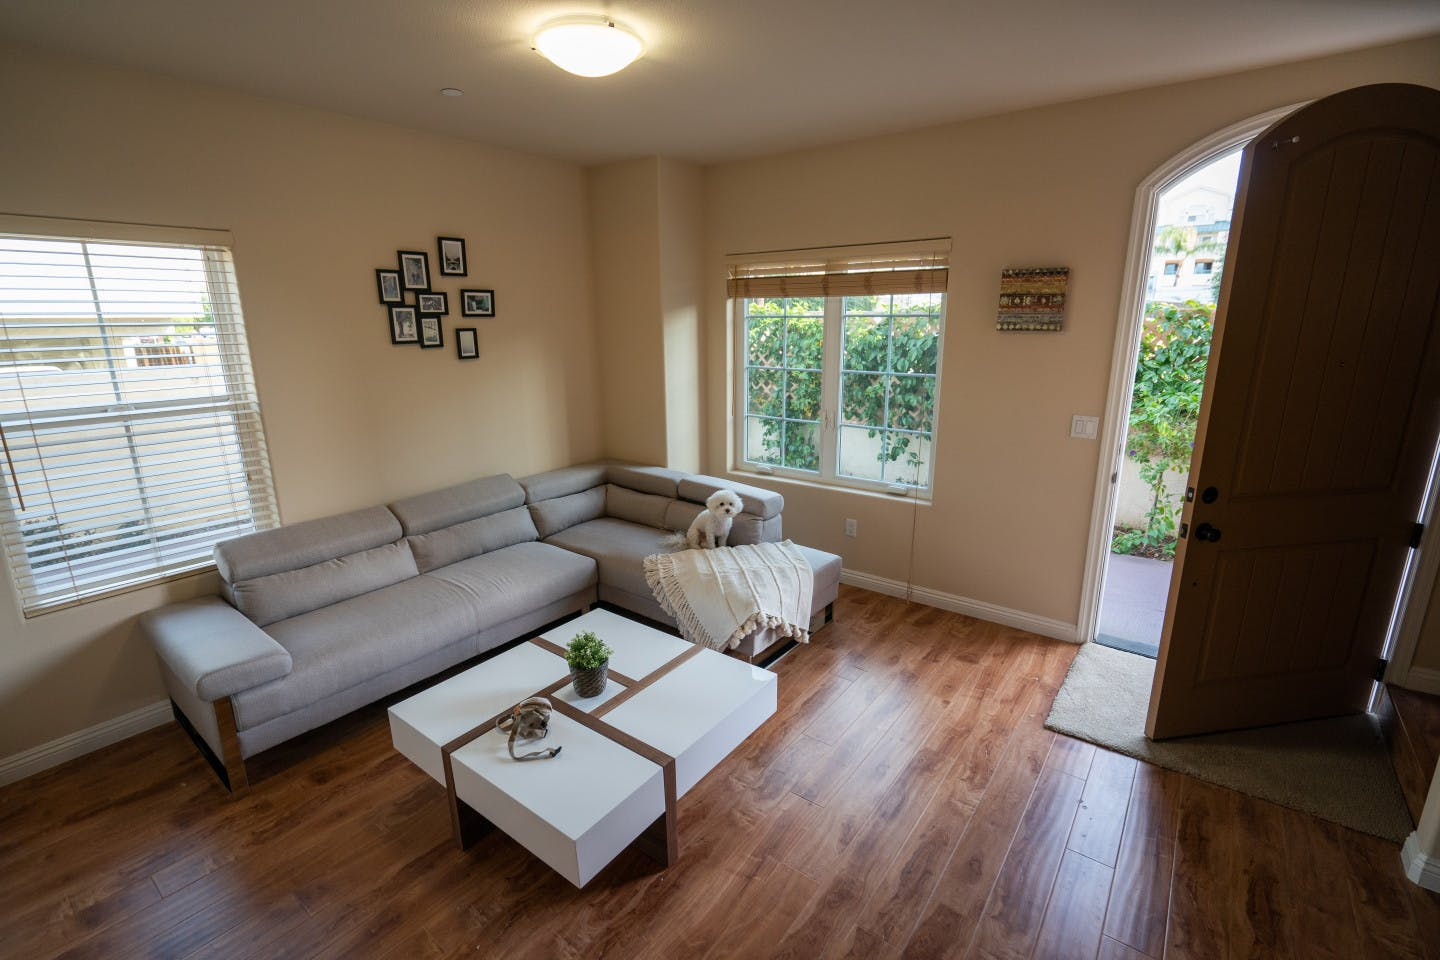 2 Residents   Howard St. - Alhambra   Cozy Urban Studio - Incl. Workspace + Lounge Area